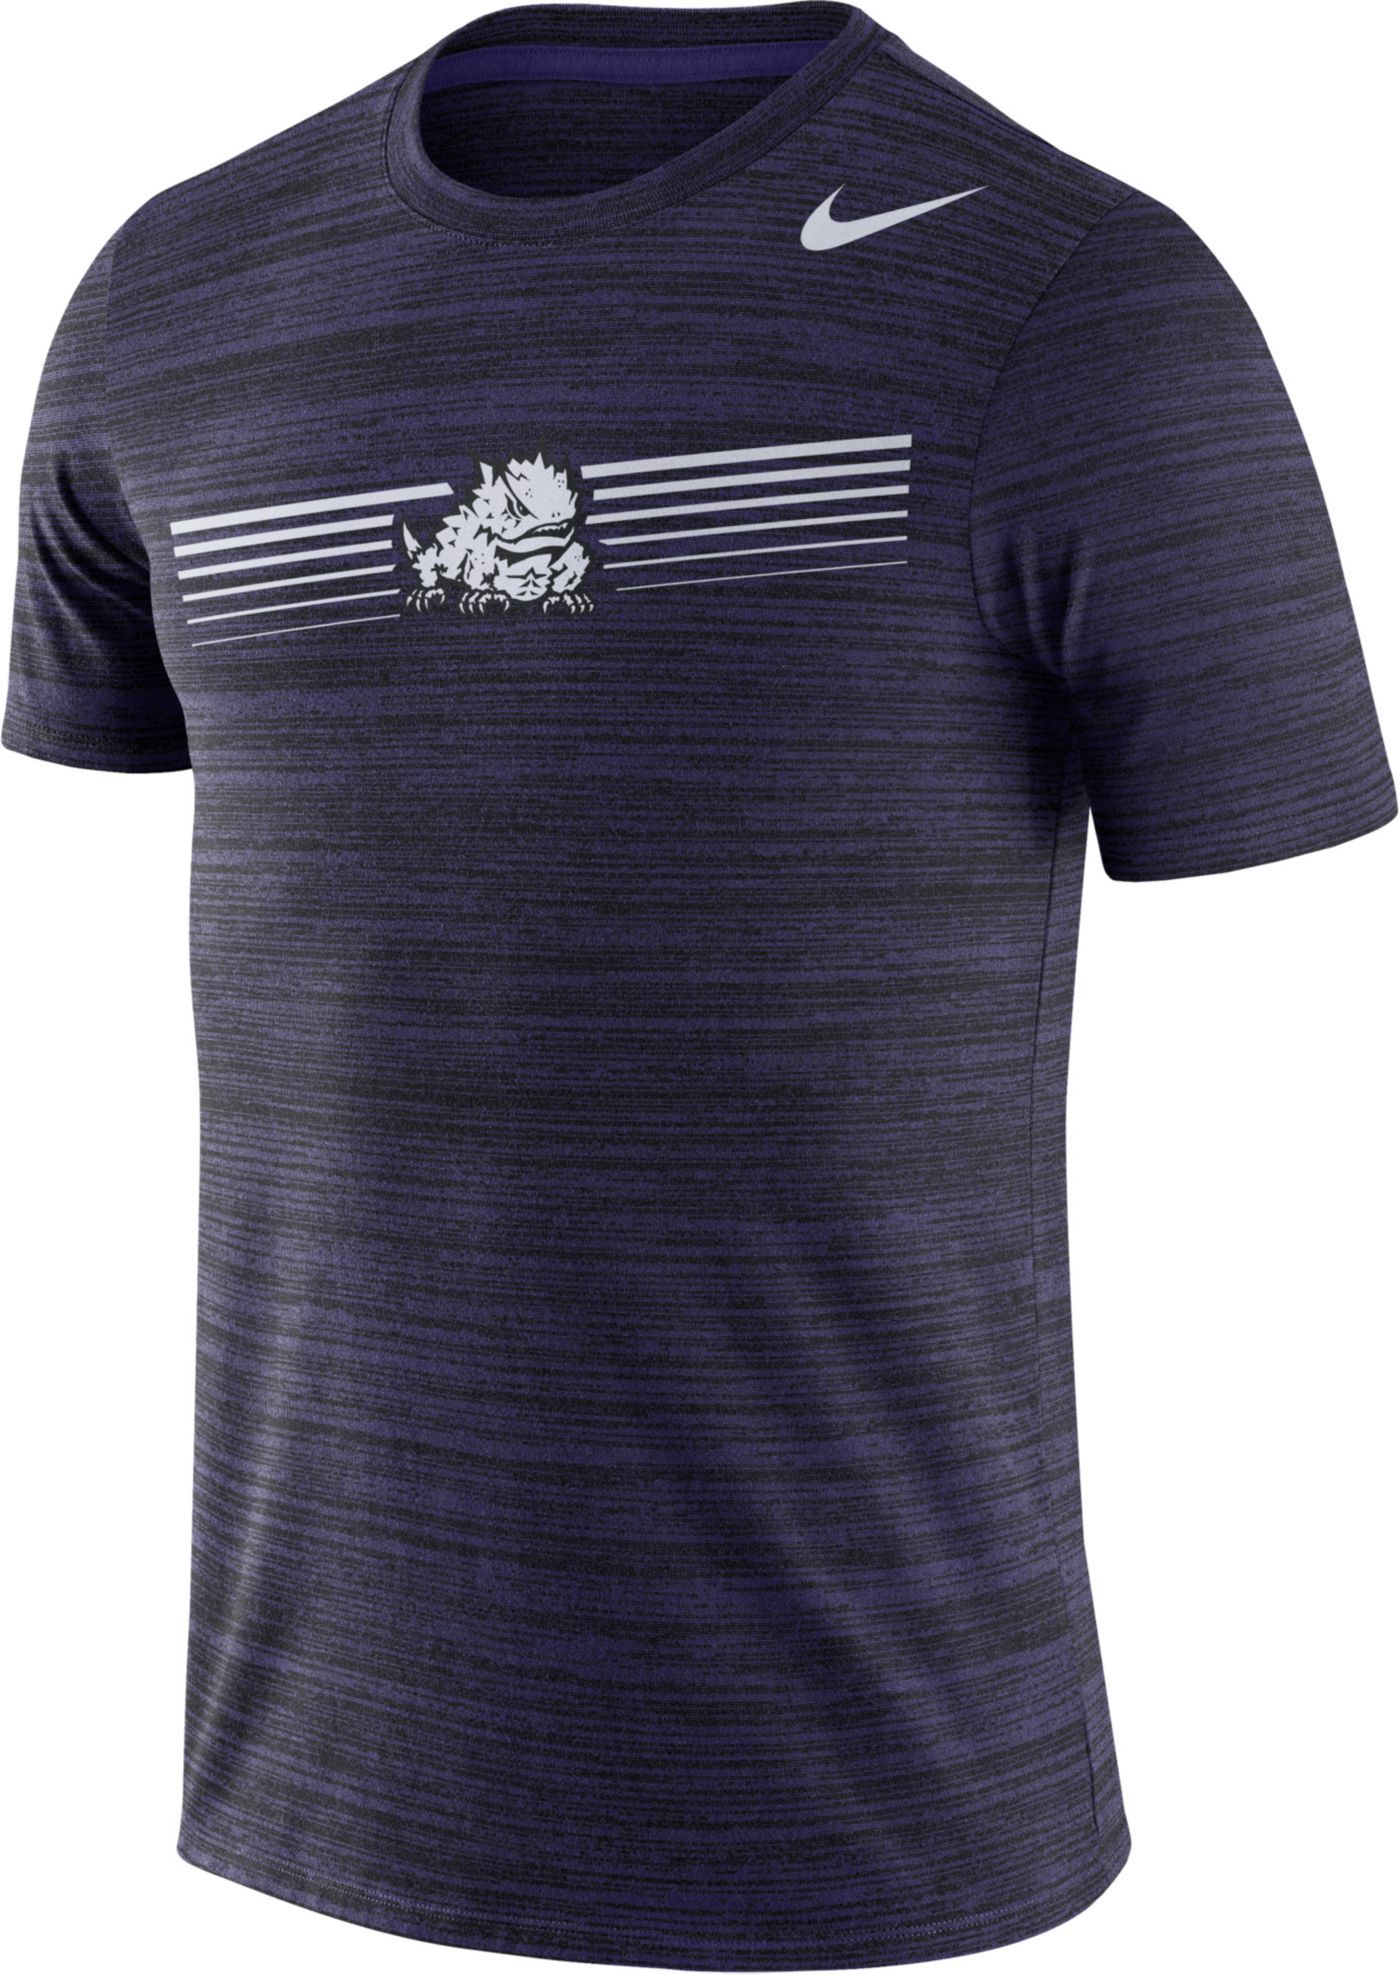 Nike Men's TCU Horned Frogs Purple Velocity Legend Graphic T-Shirt